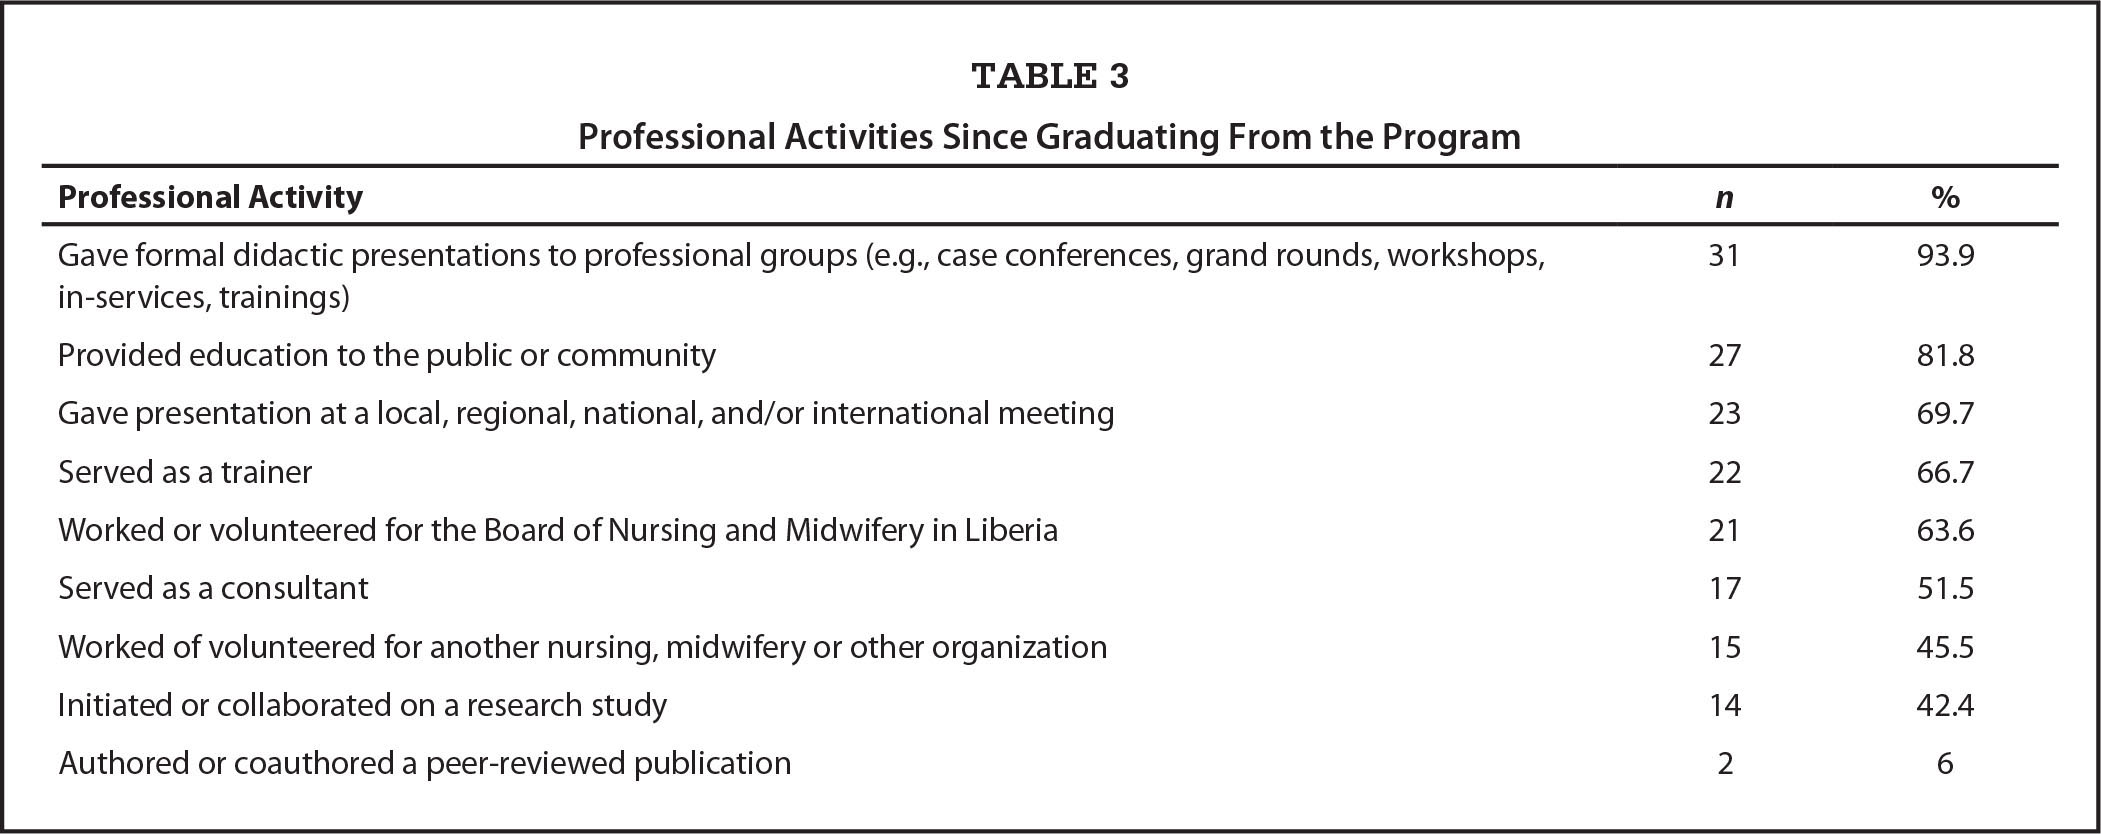 Professional Activities Since Graduating From the Program